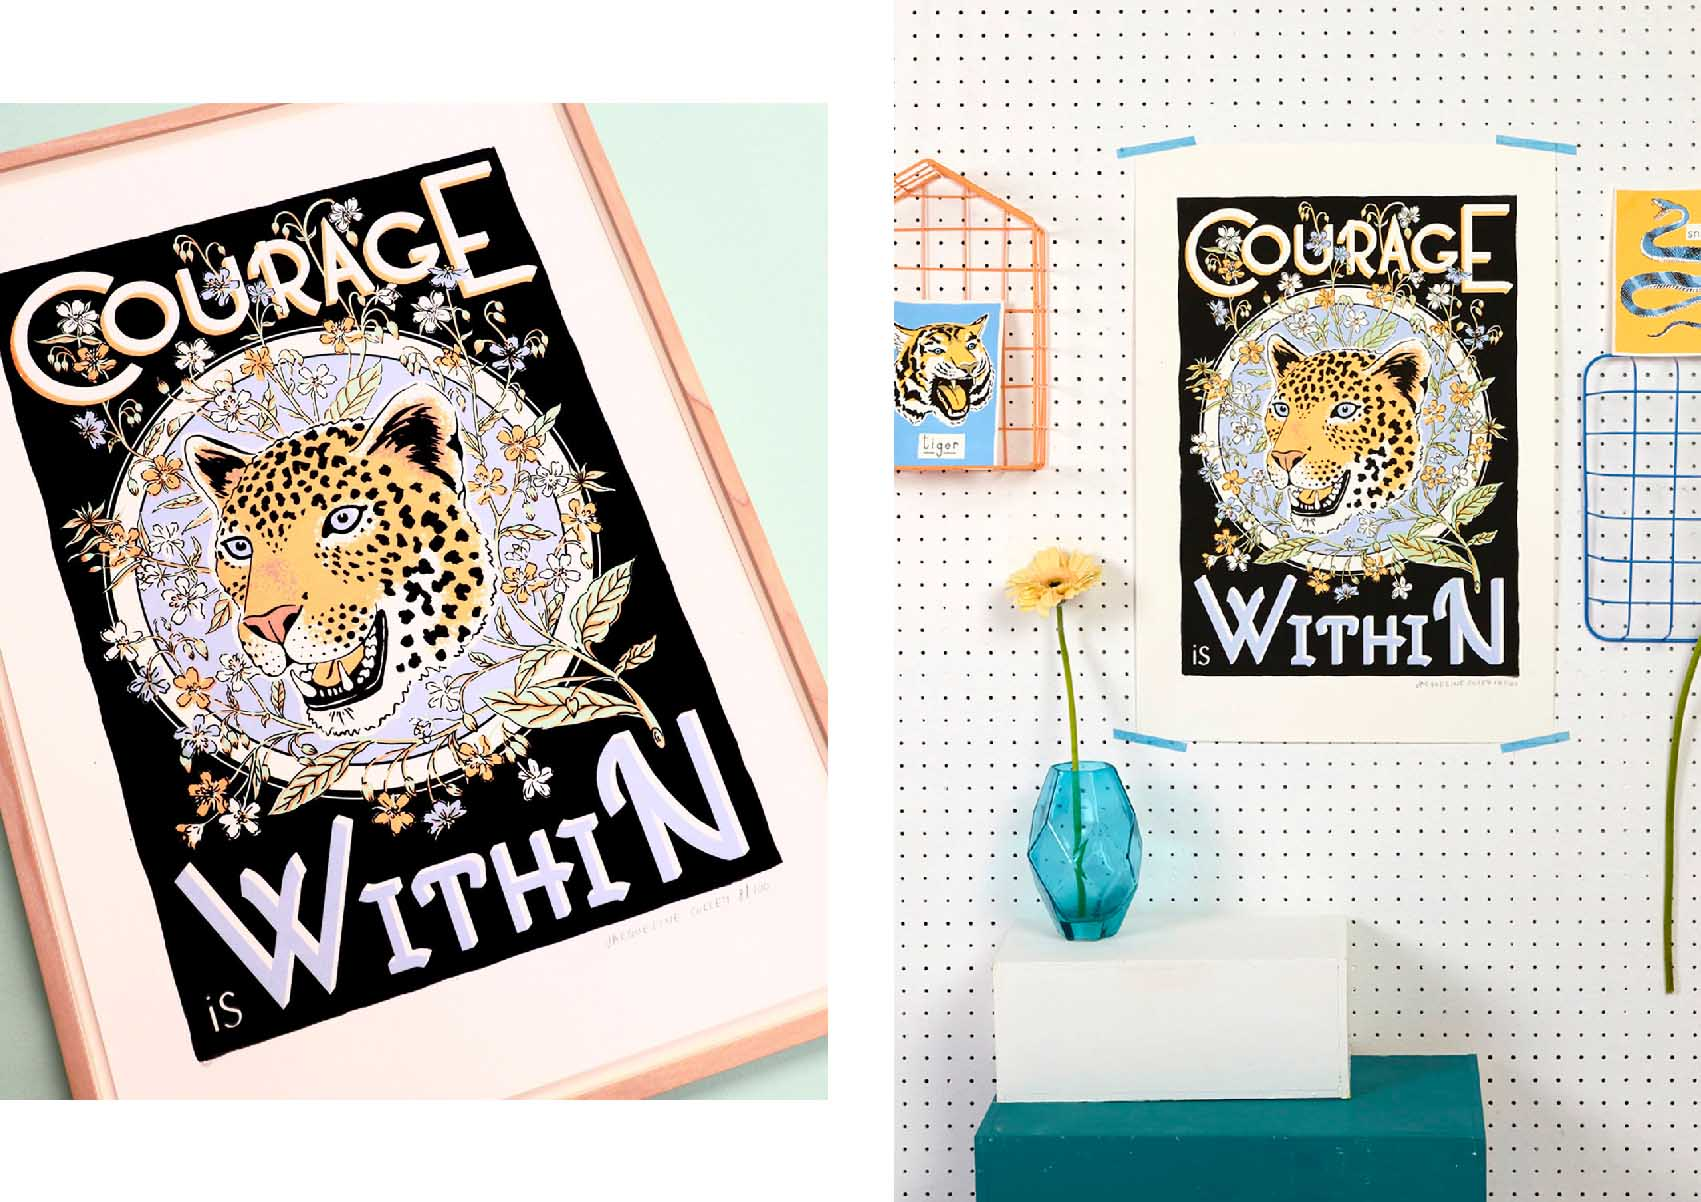 Courage-is-within-Silk-screen-print-Jacqueline-colley.jpg